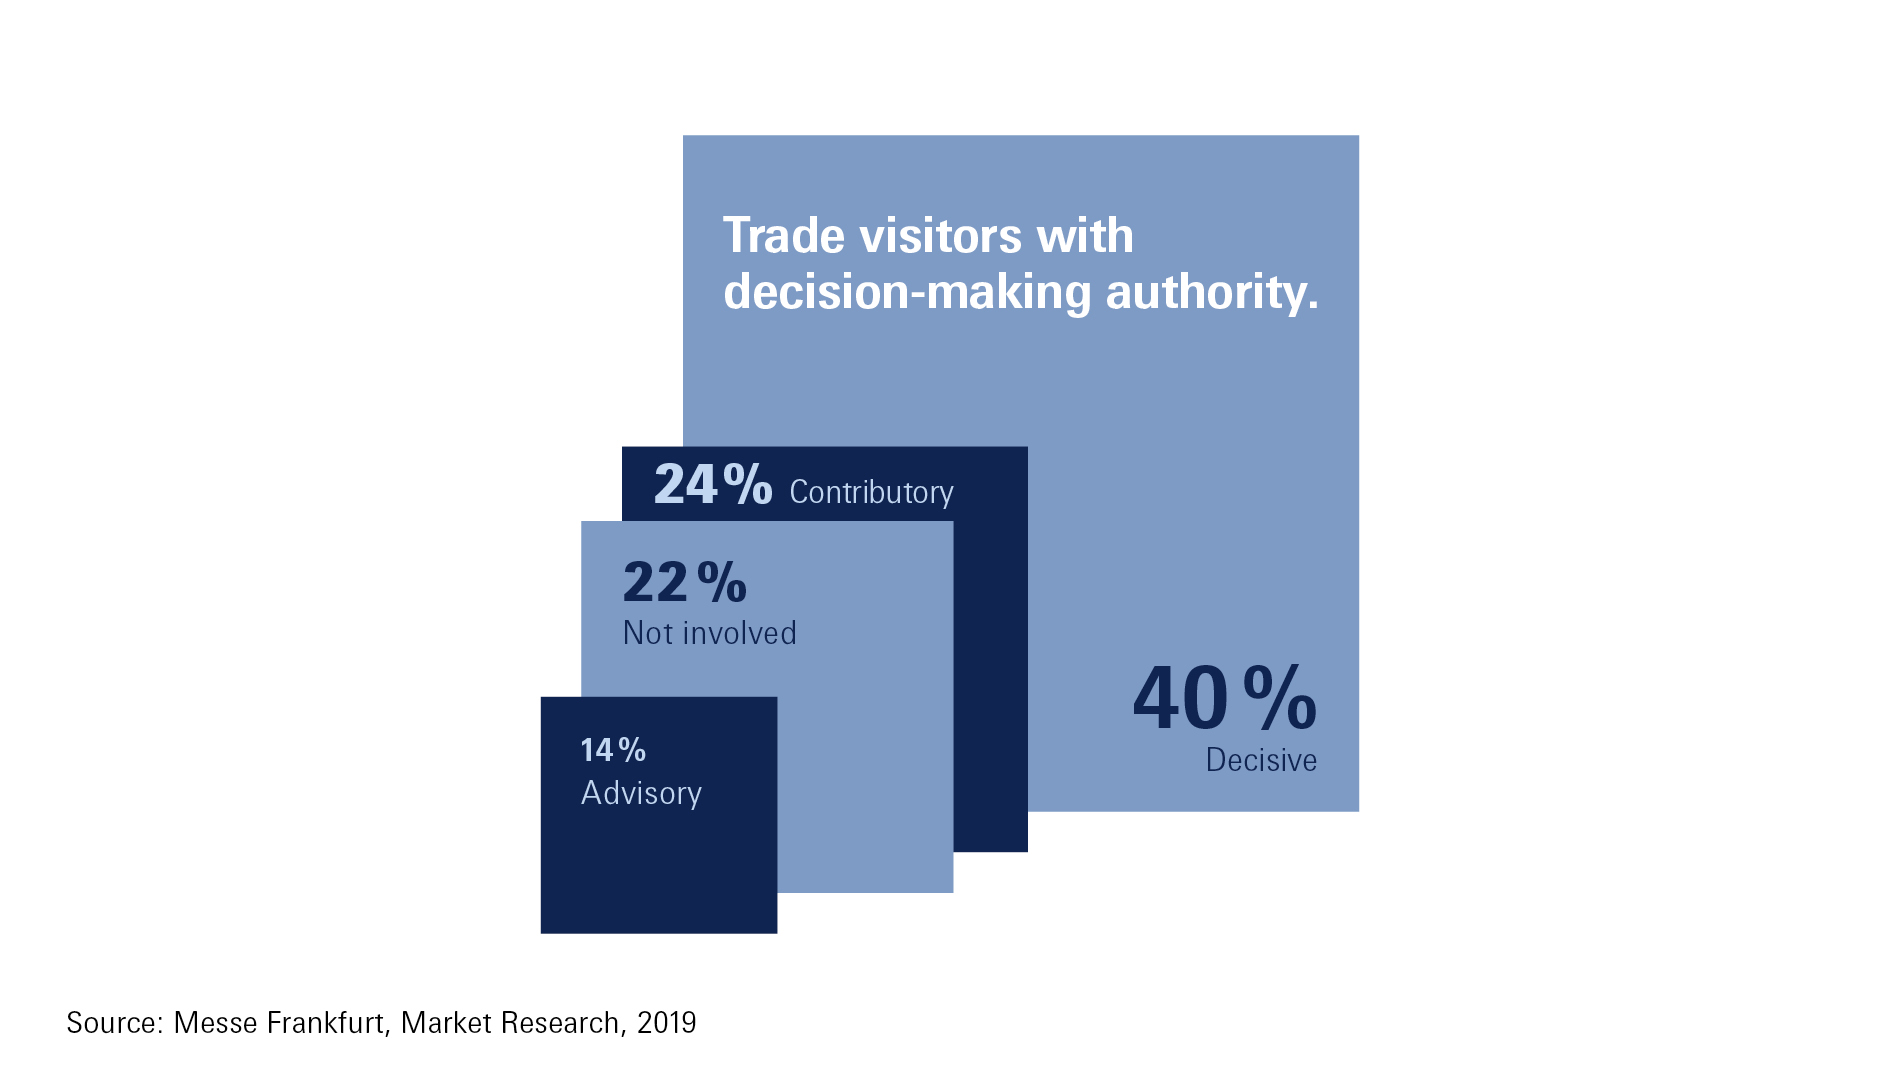 Ambiente - trade visitors with decision-making authority 2019